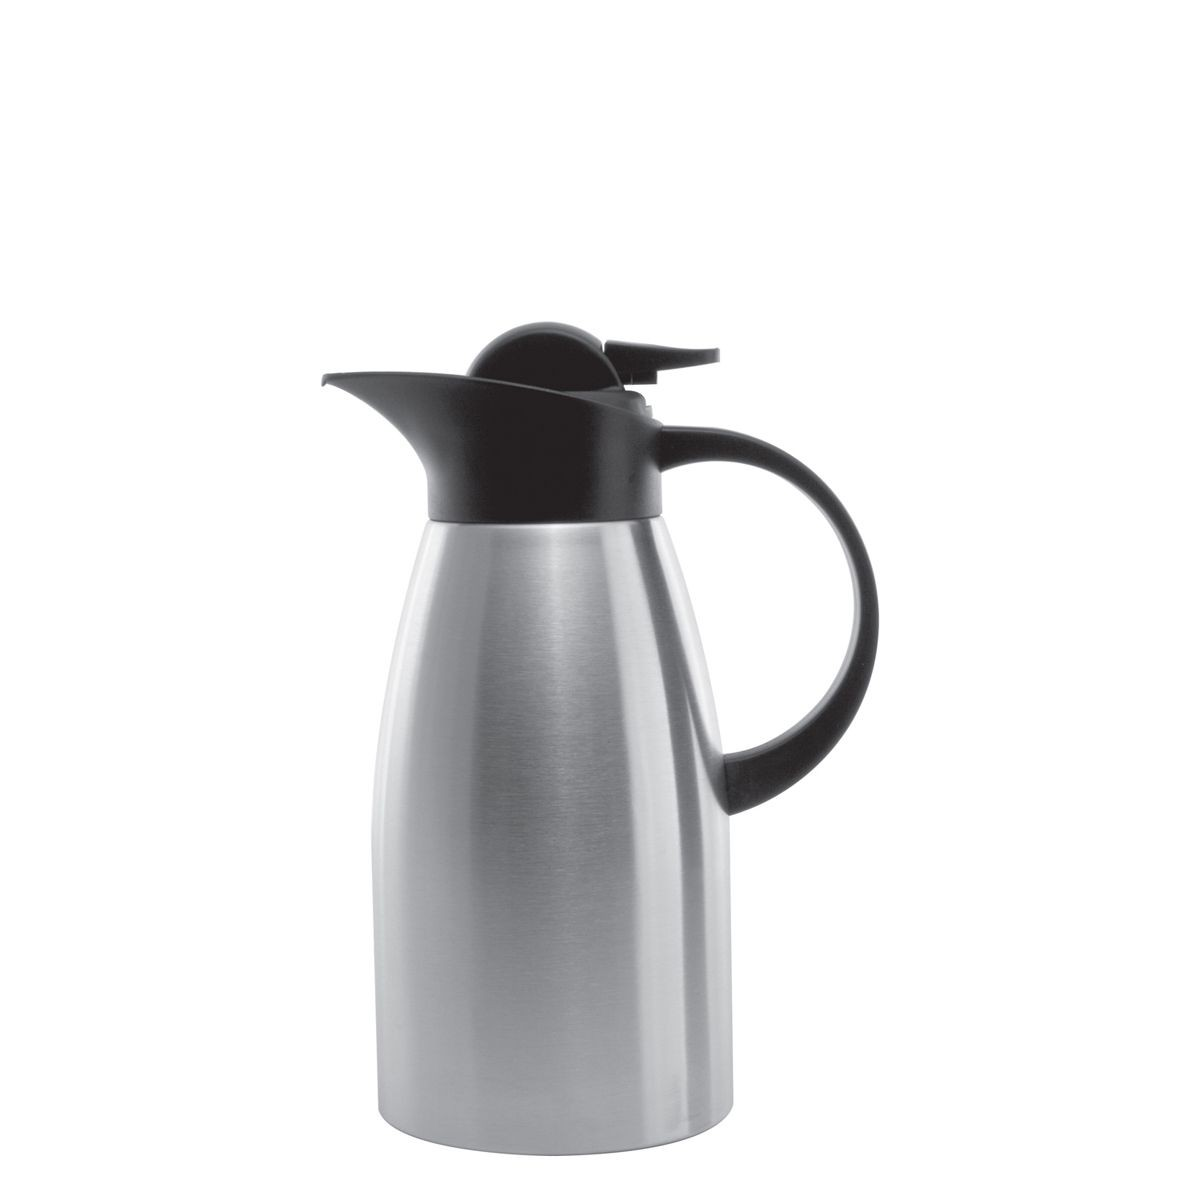 Service Ideas KVP1500 Brushed Stainless Touch Coffee Server, 1.5 Liter